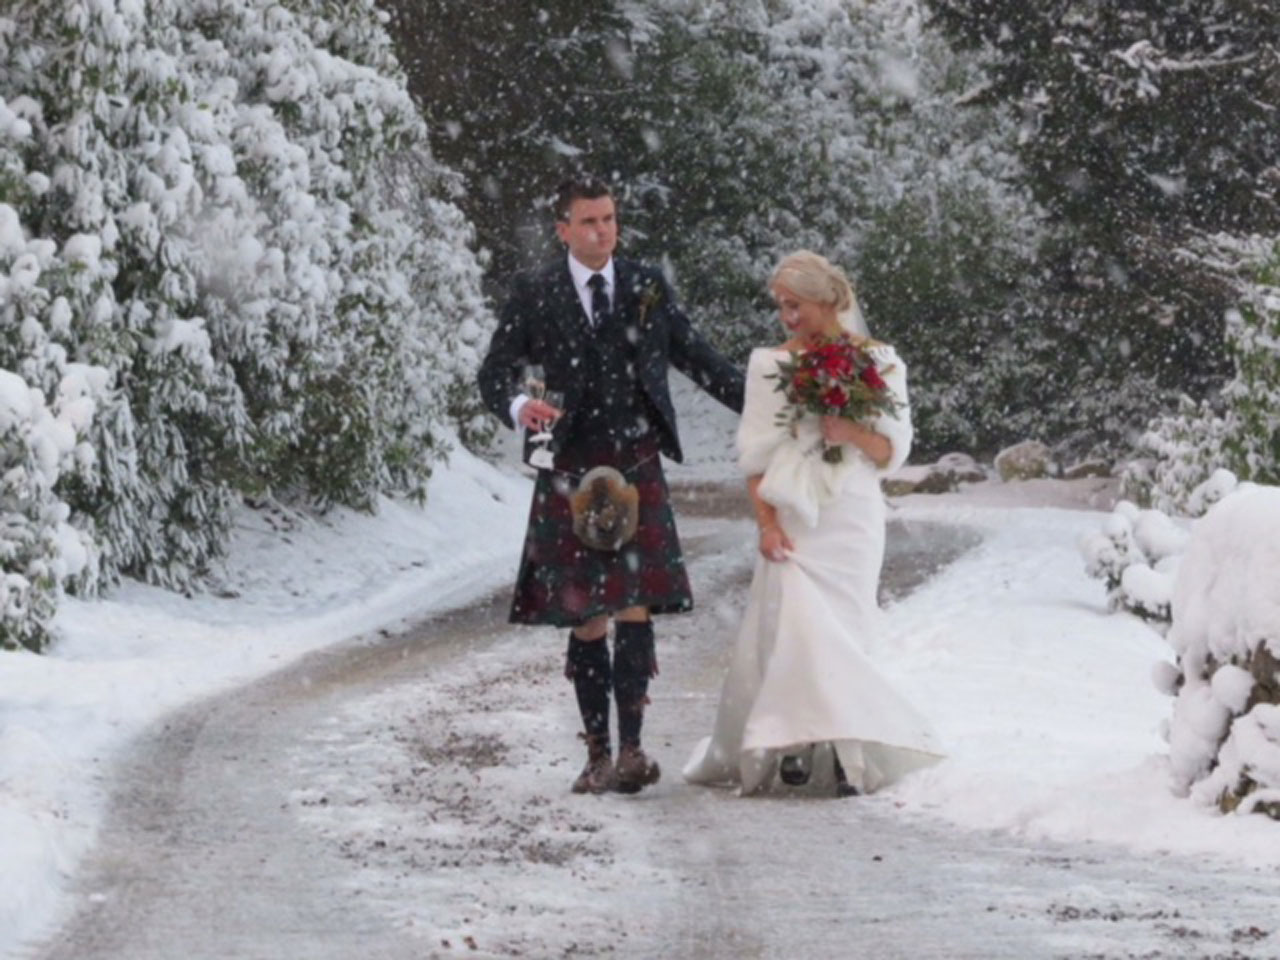 Glentrium-Estate-Wedding-Venue-Scotland-H&C1.jpg